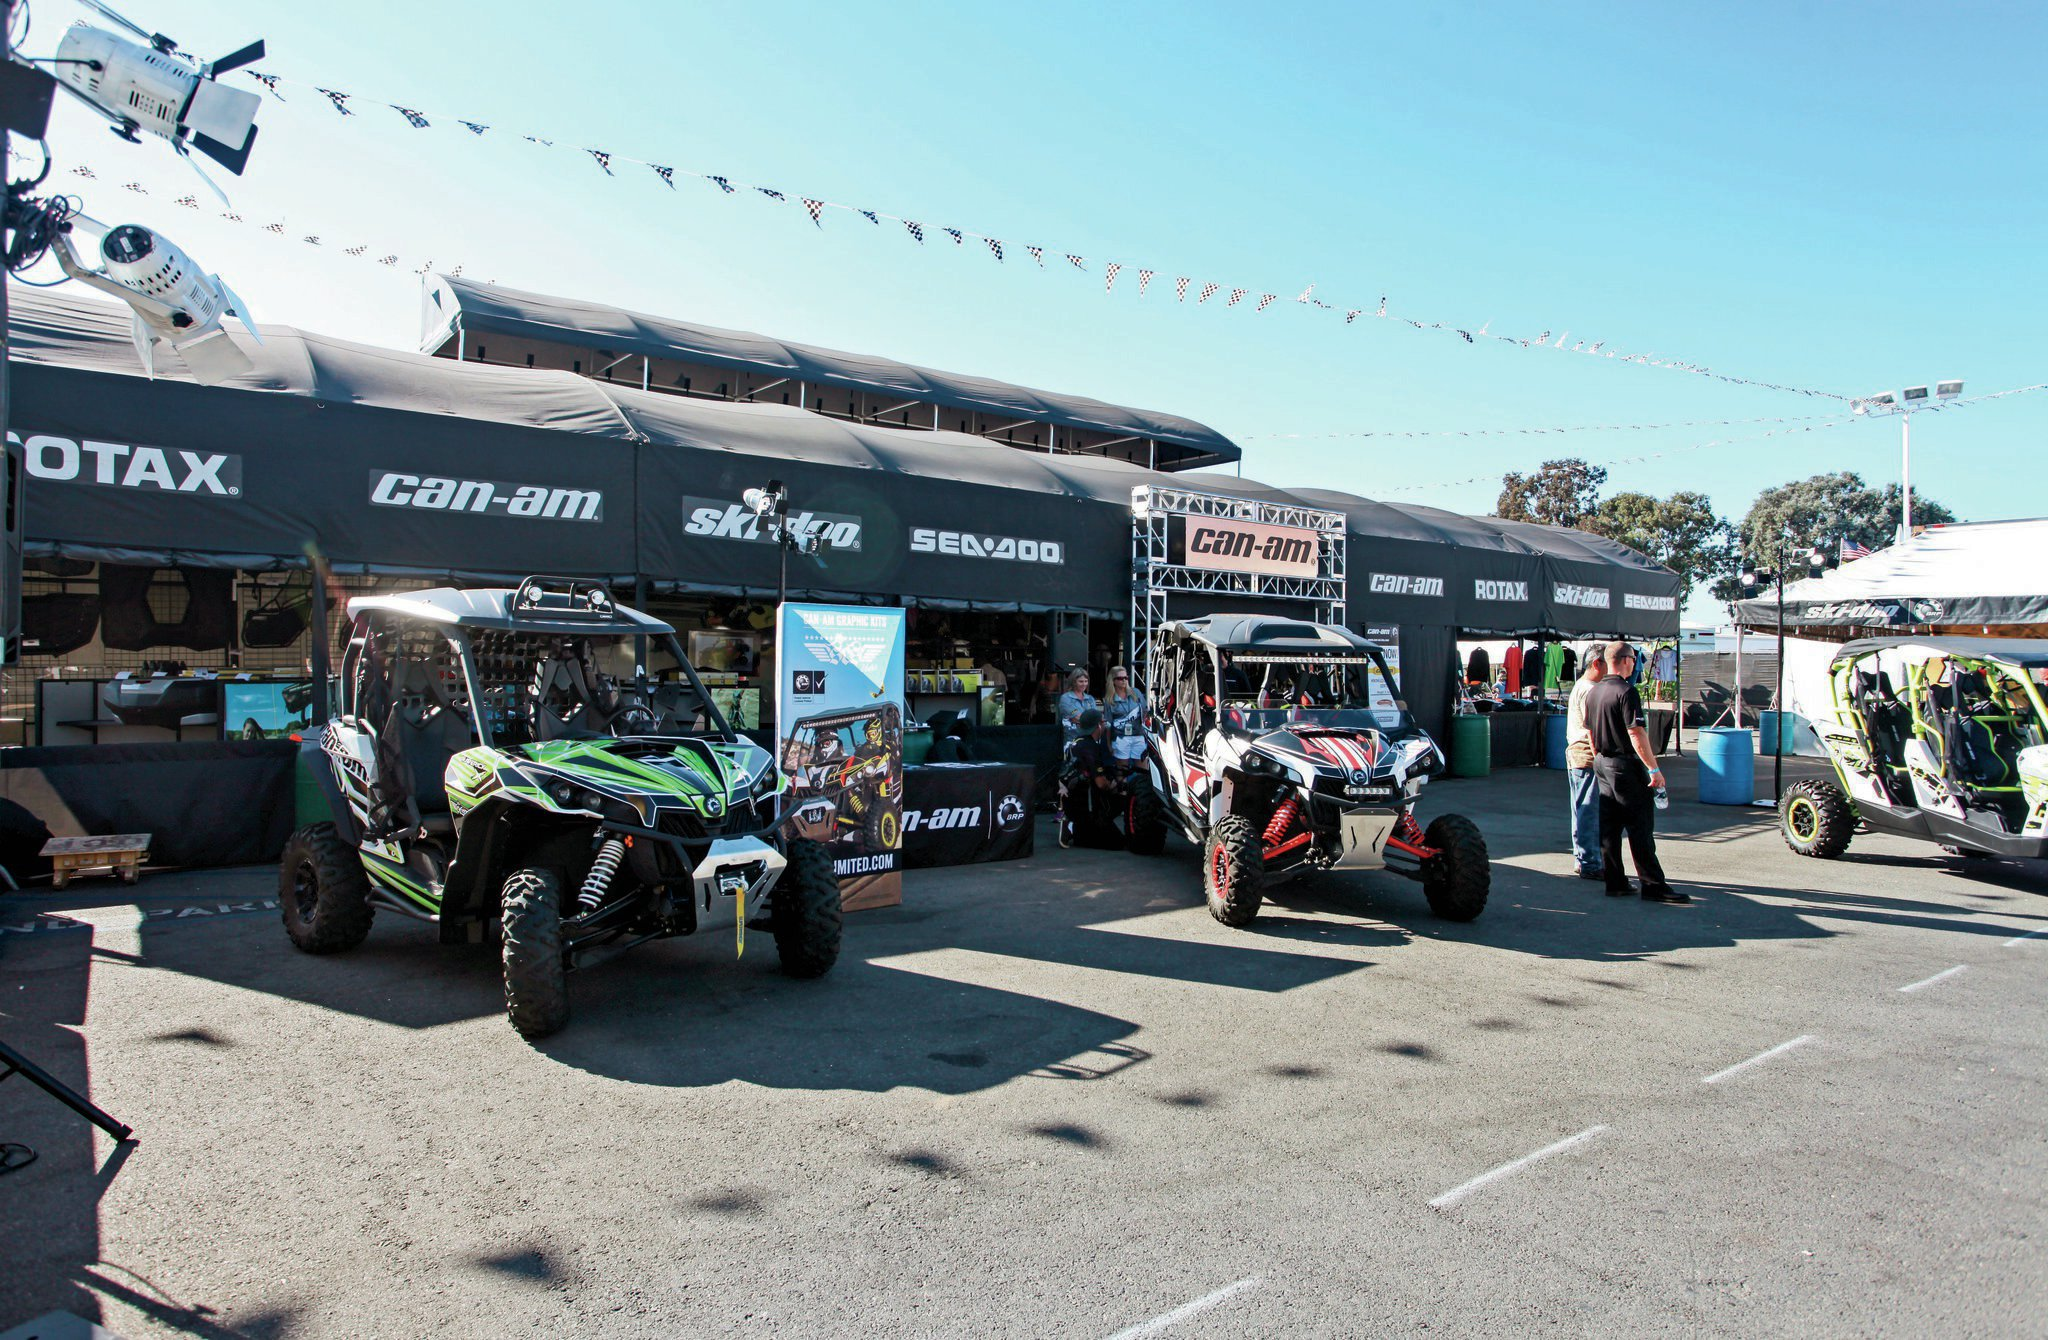 Can-Am was on hand with their latest UTVs.